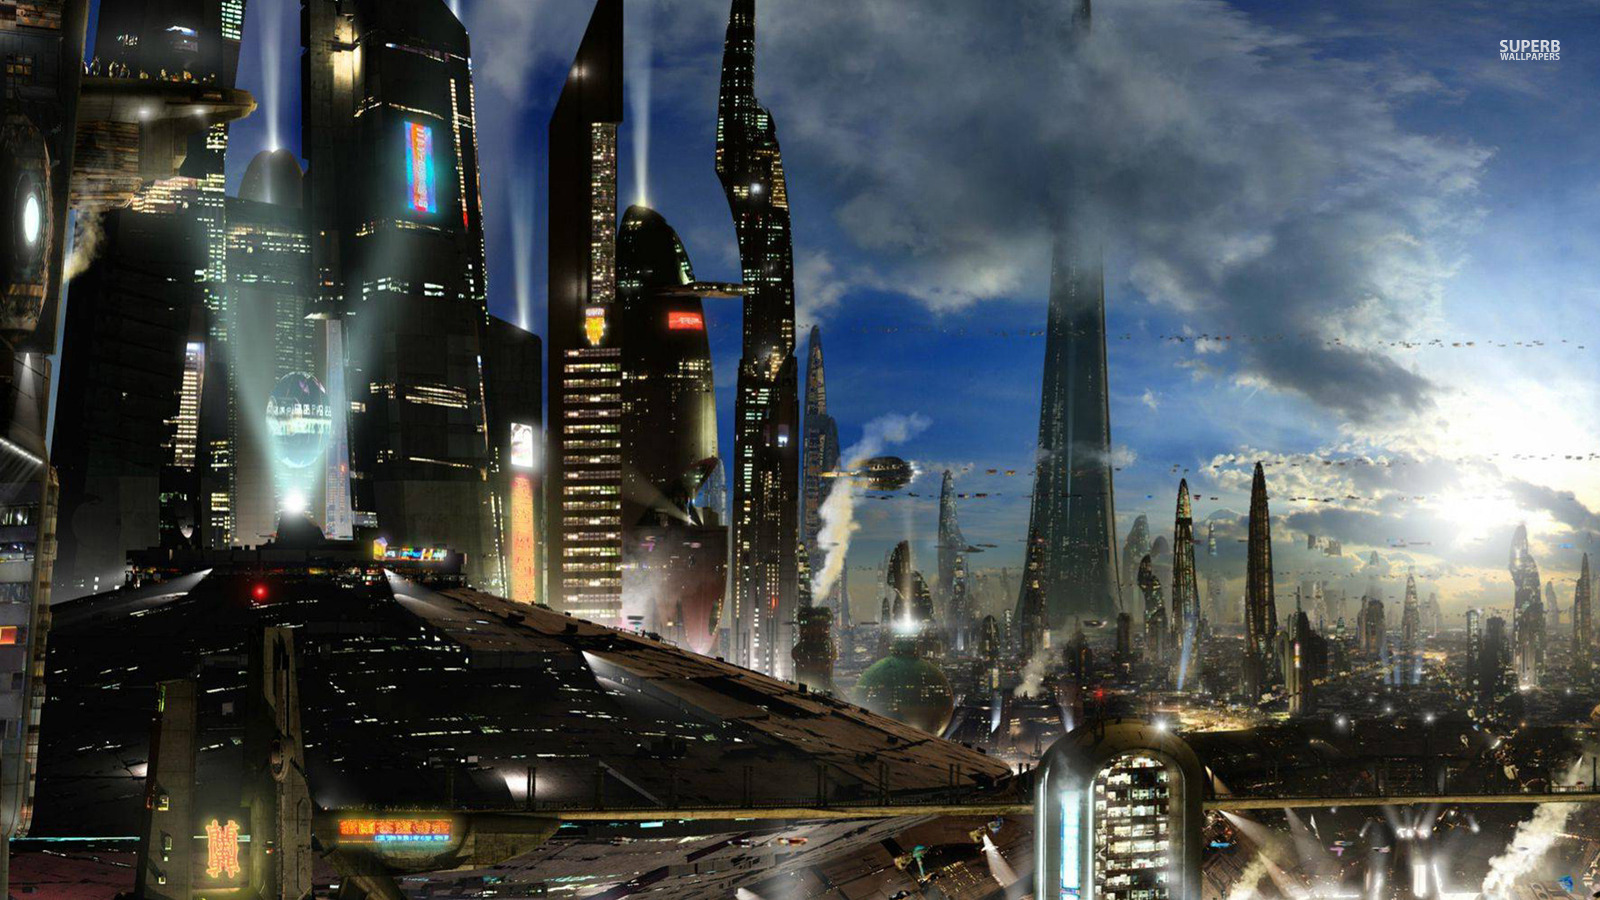 Fantasy Images Futuristic City HD Wallpaper And Background Photos